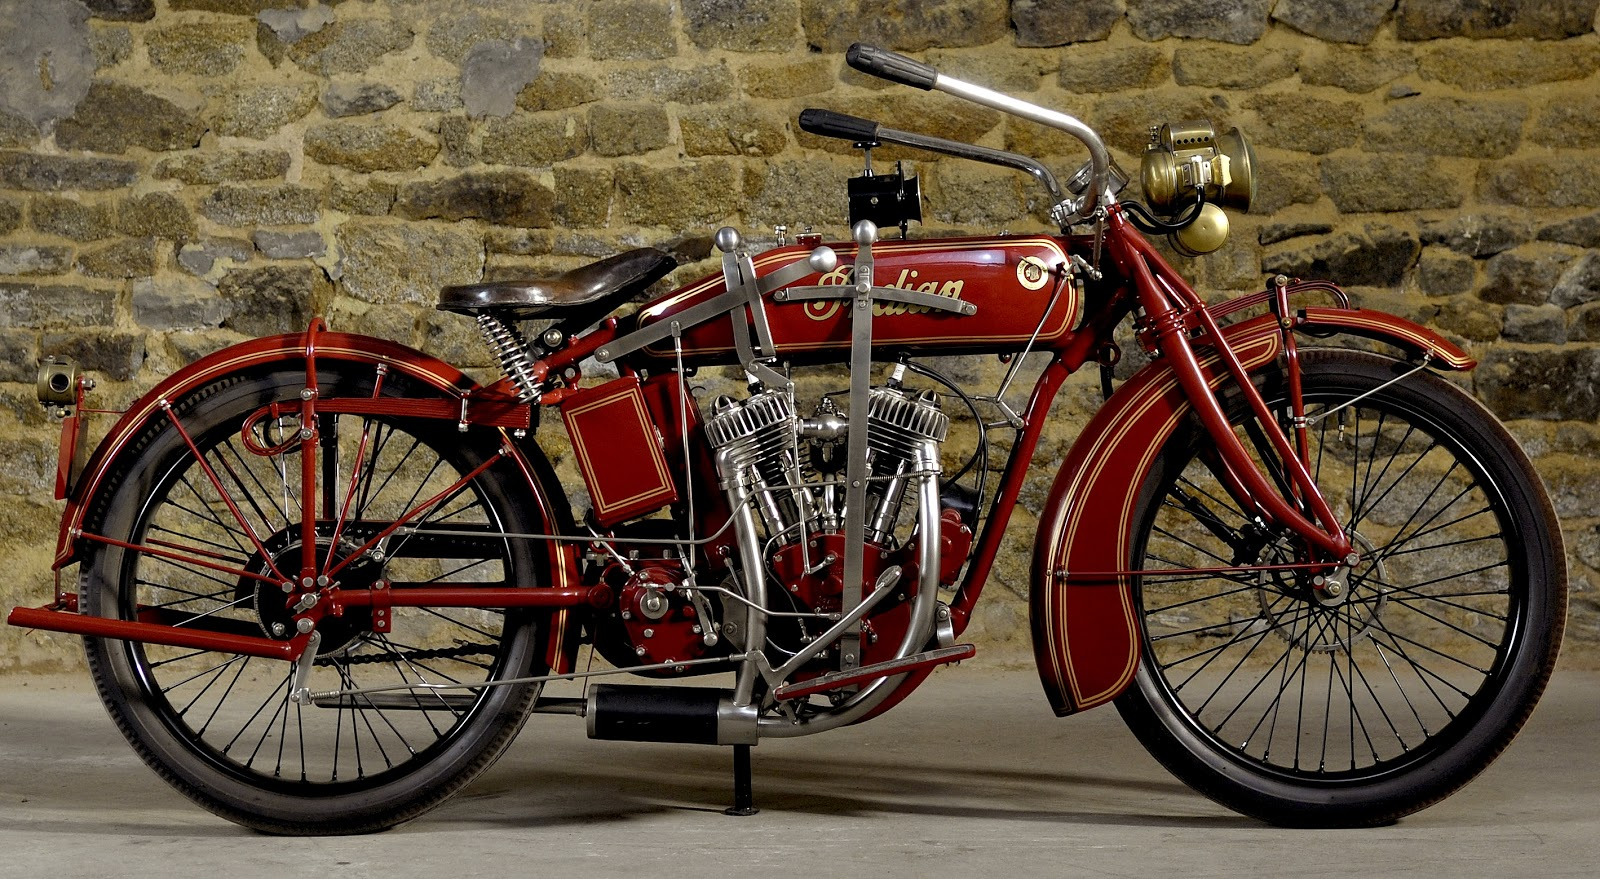 First Indian Motorcycle furthermore Honda CBR 250 as well 1916 Indian ...